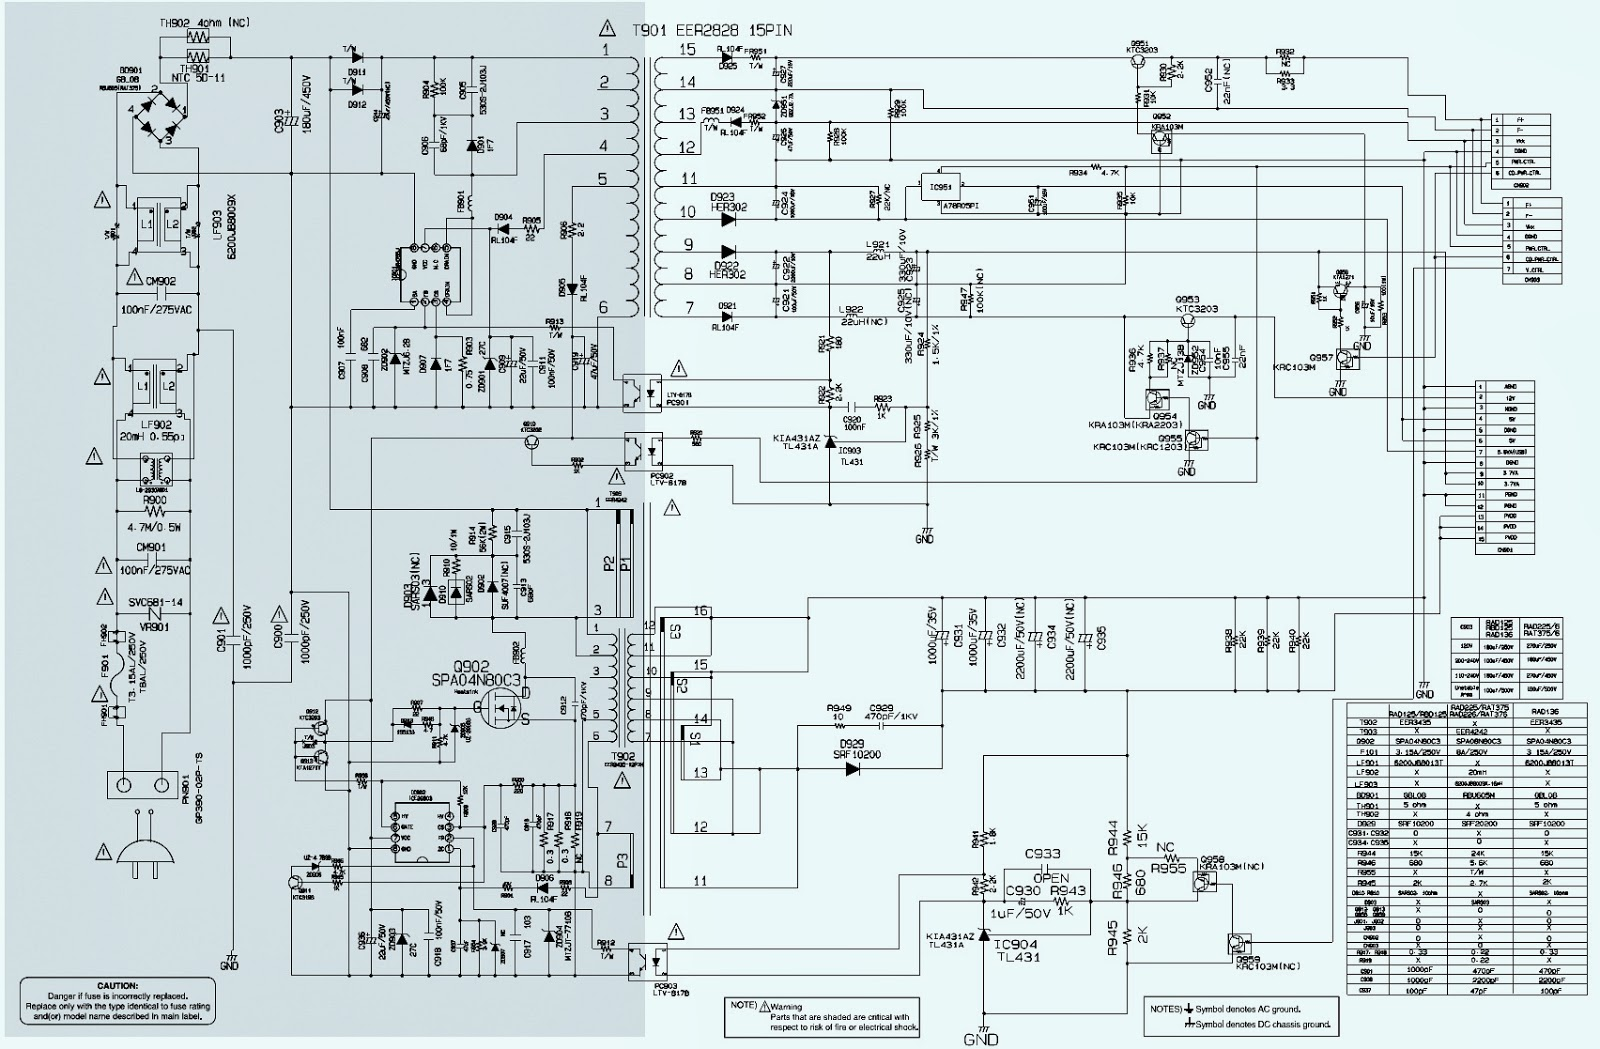 Electro help LG RAT376 SMPS Power Supply SCHEMATIC